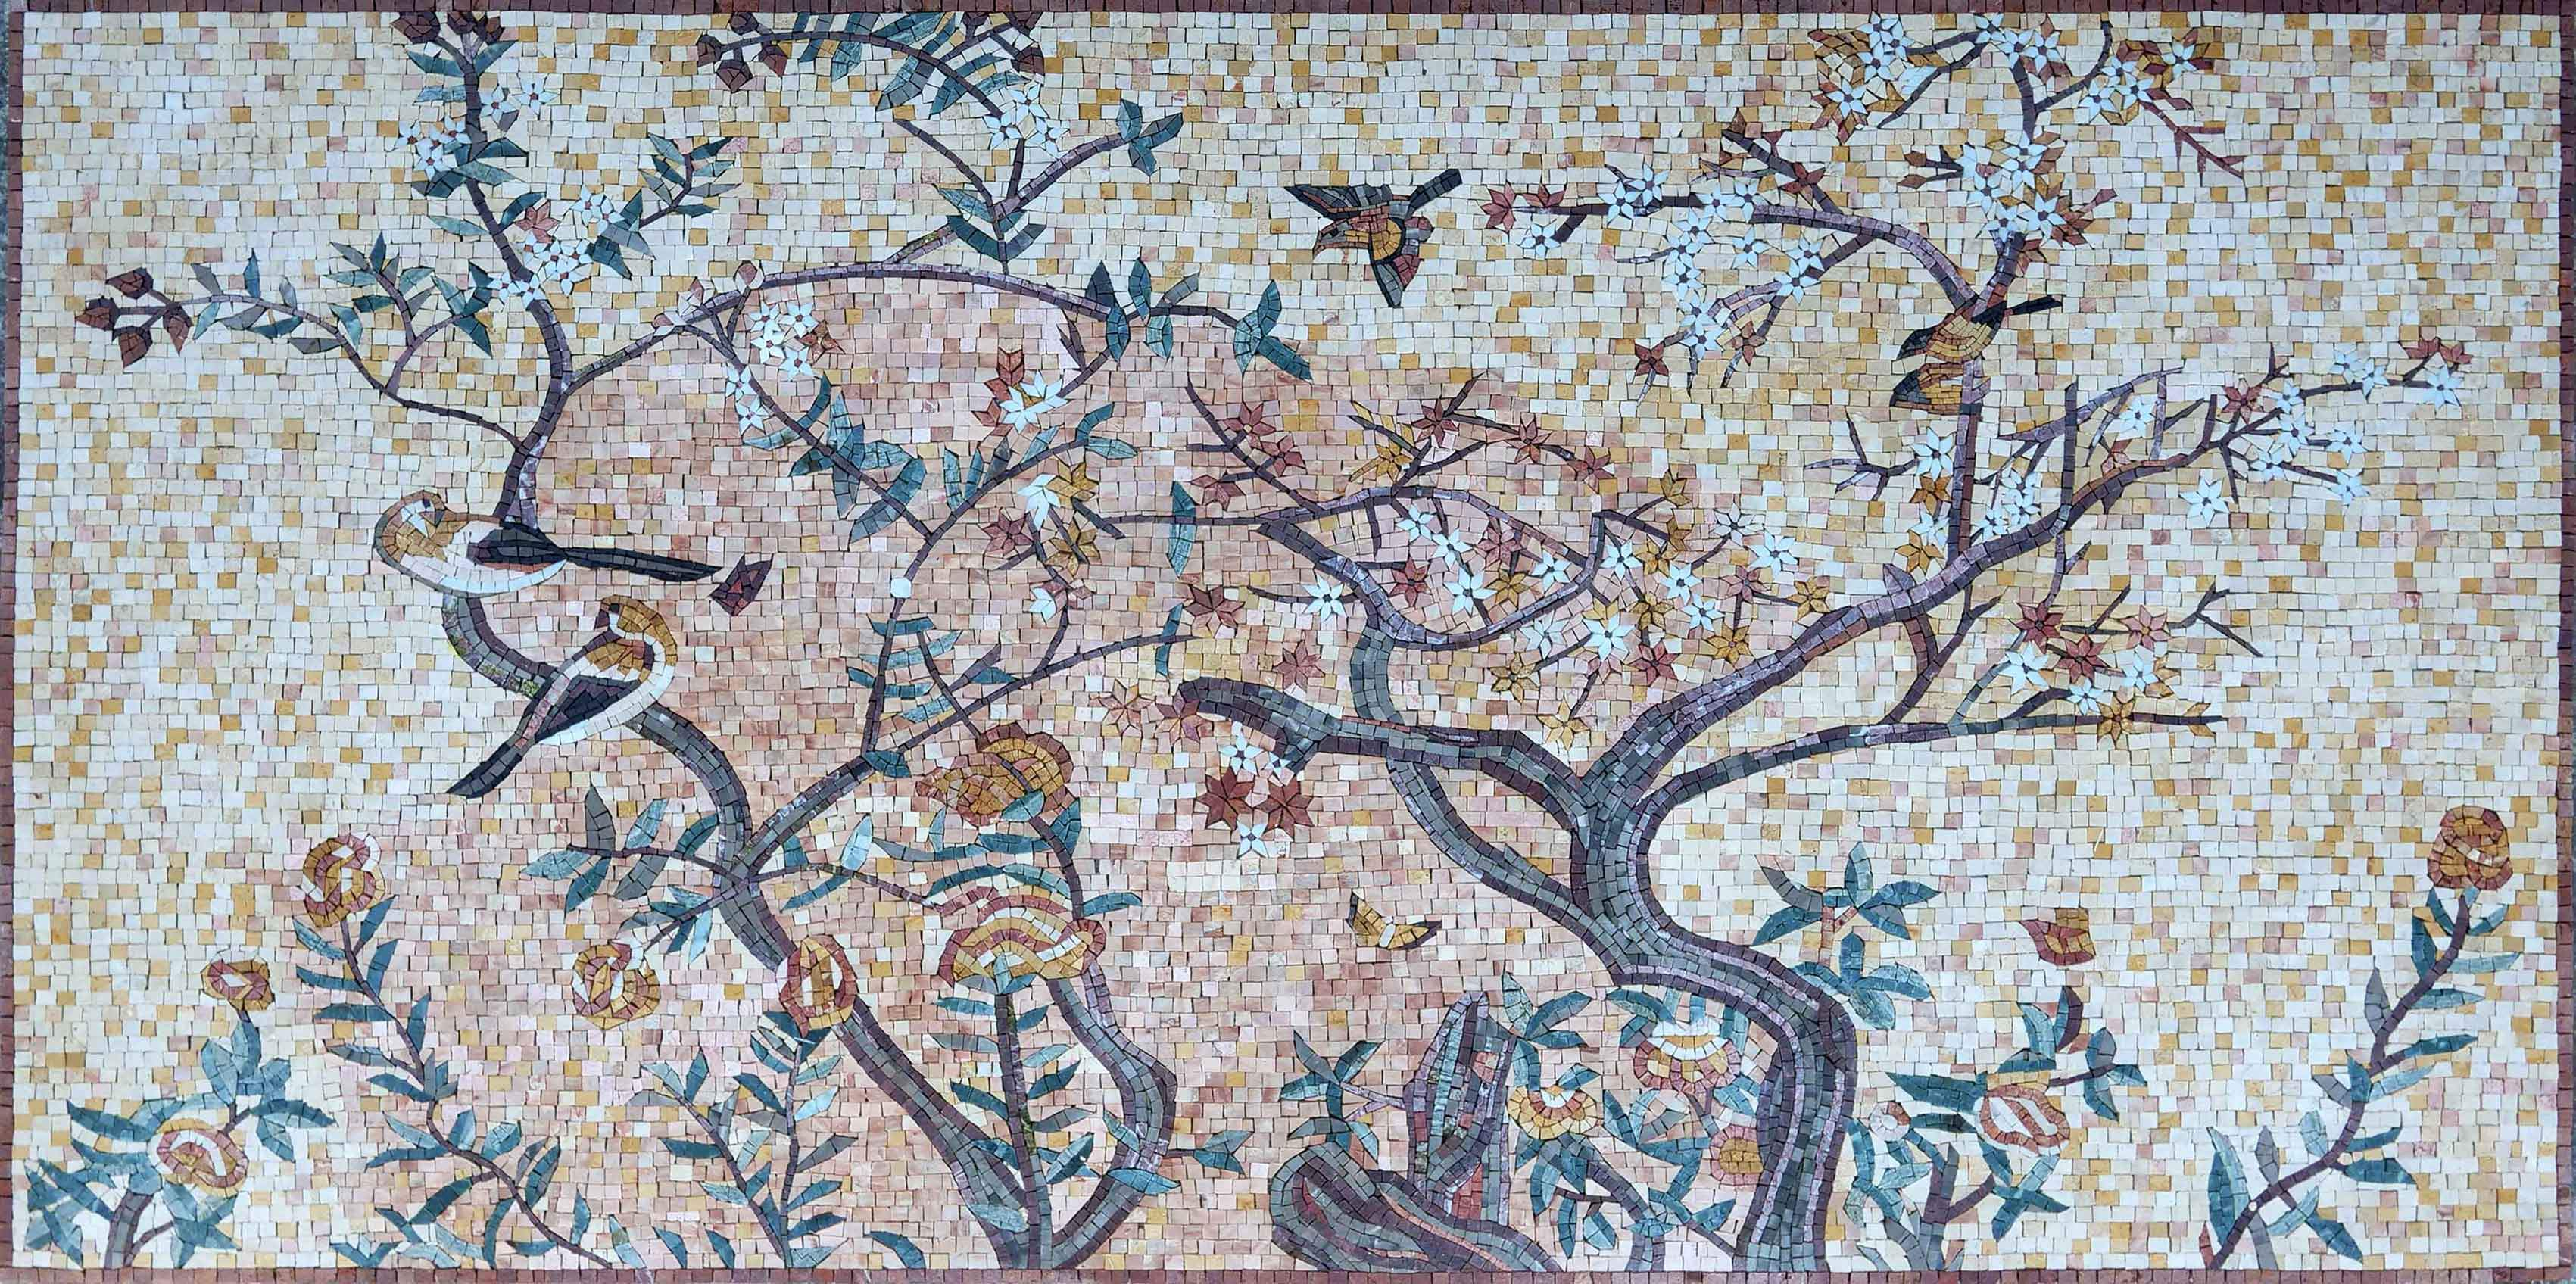 Mosaic Art Blooming Tree And Birds Pic